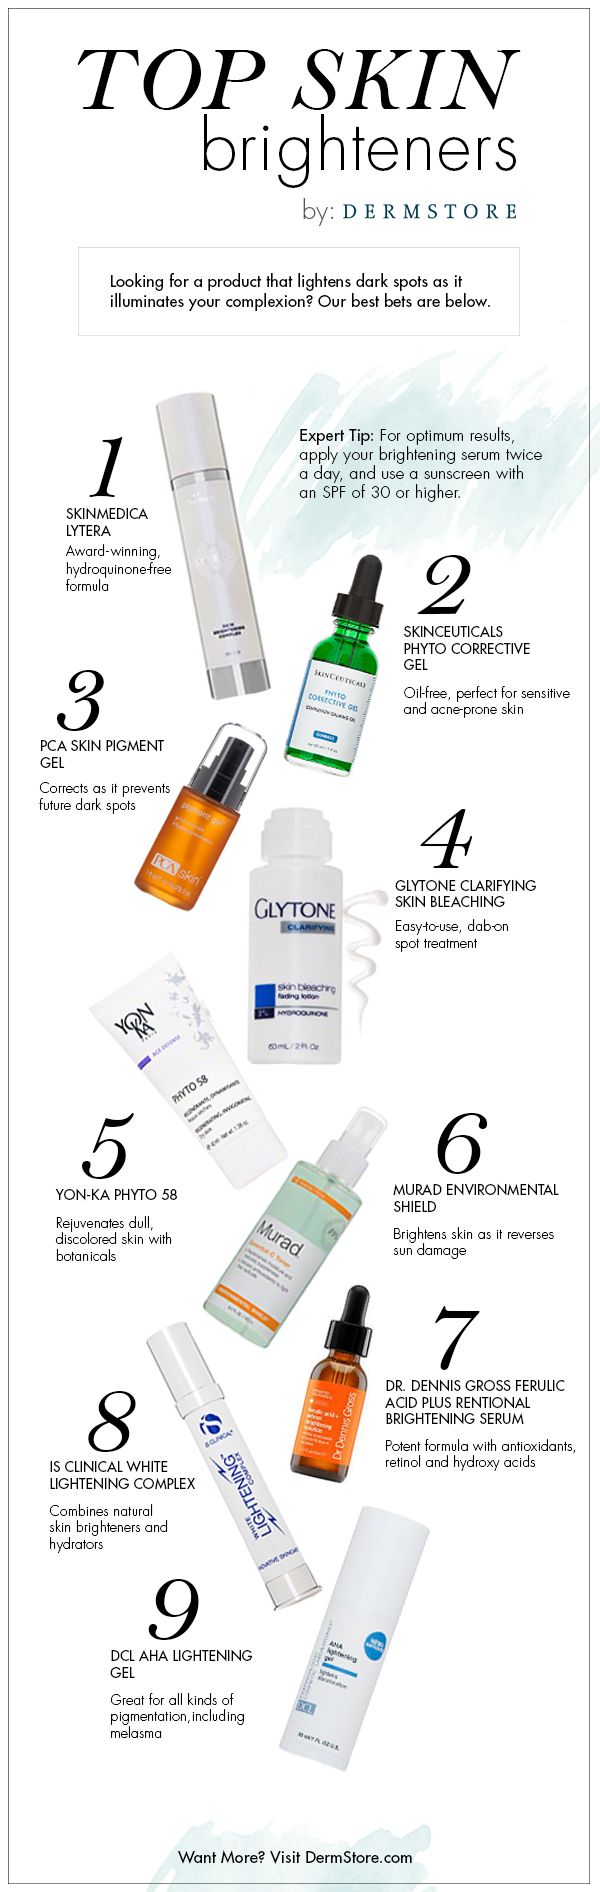 Clearer, brighter-looking skin—who doesn't want that? Brightening serums can do just that, if you know what to look for.